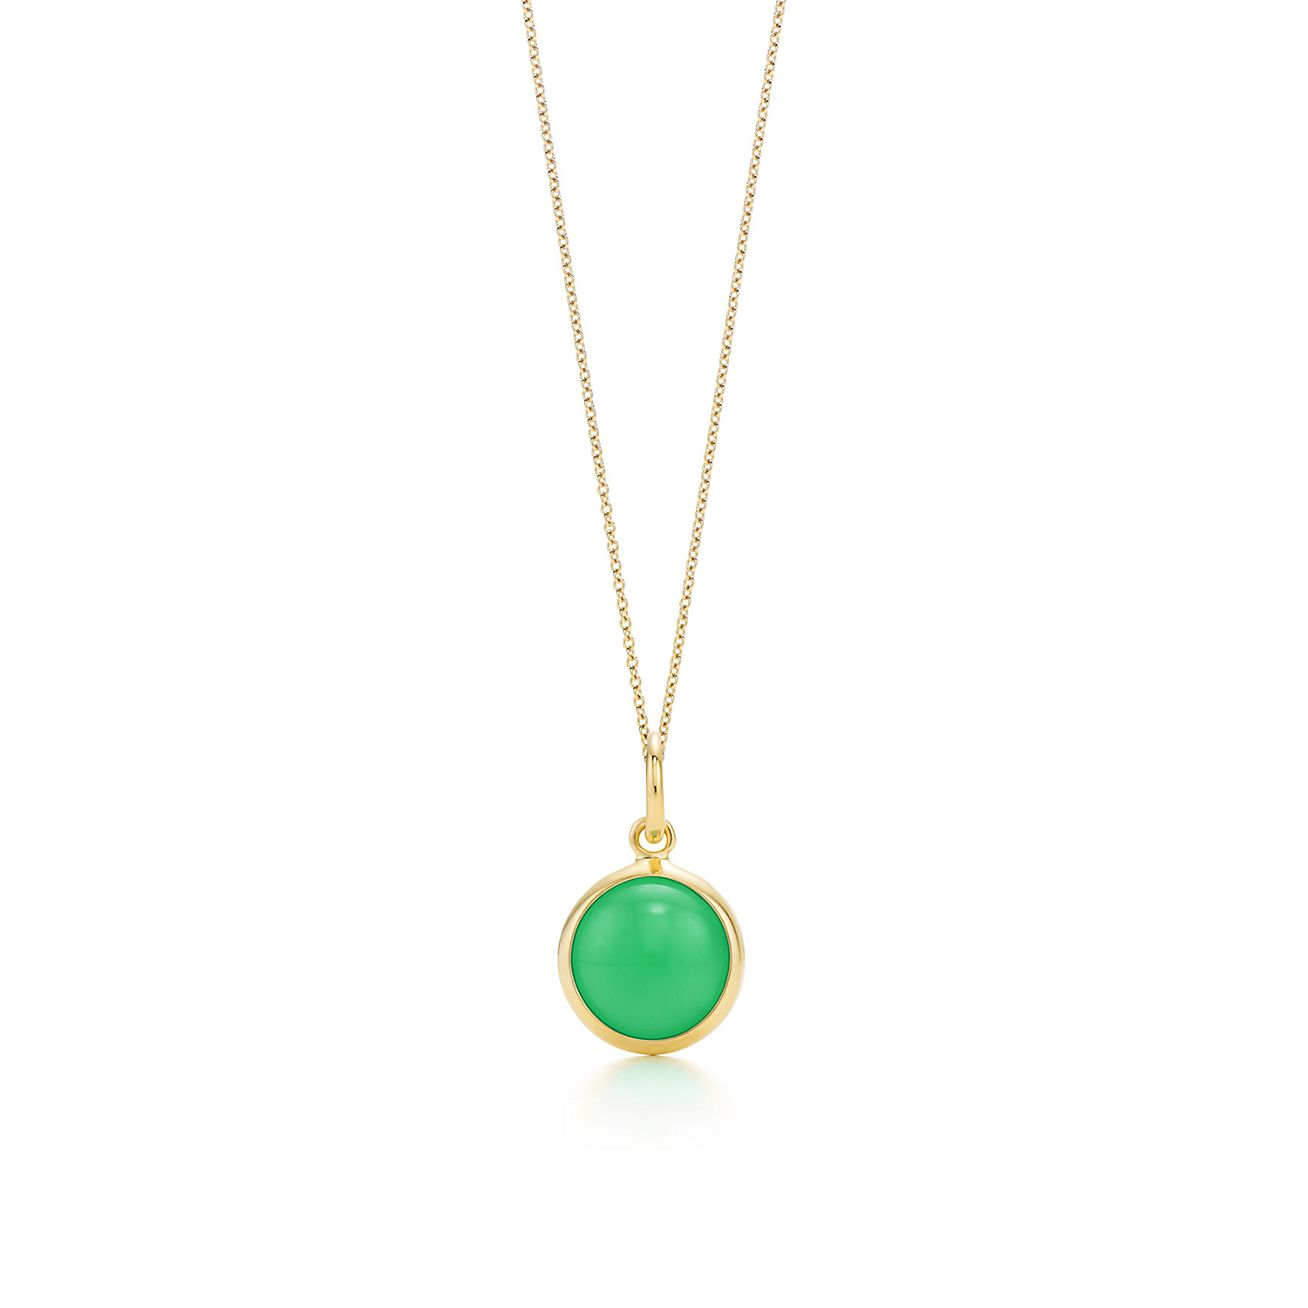 chrysoprase necklace yamaya products white pendant liv gold ivy chryso